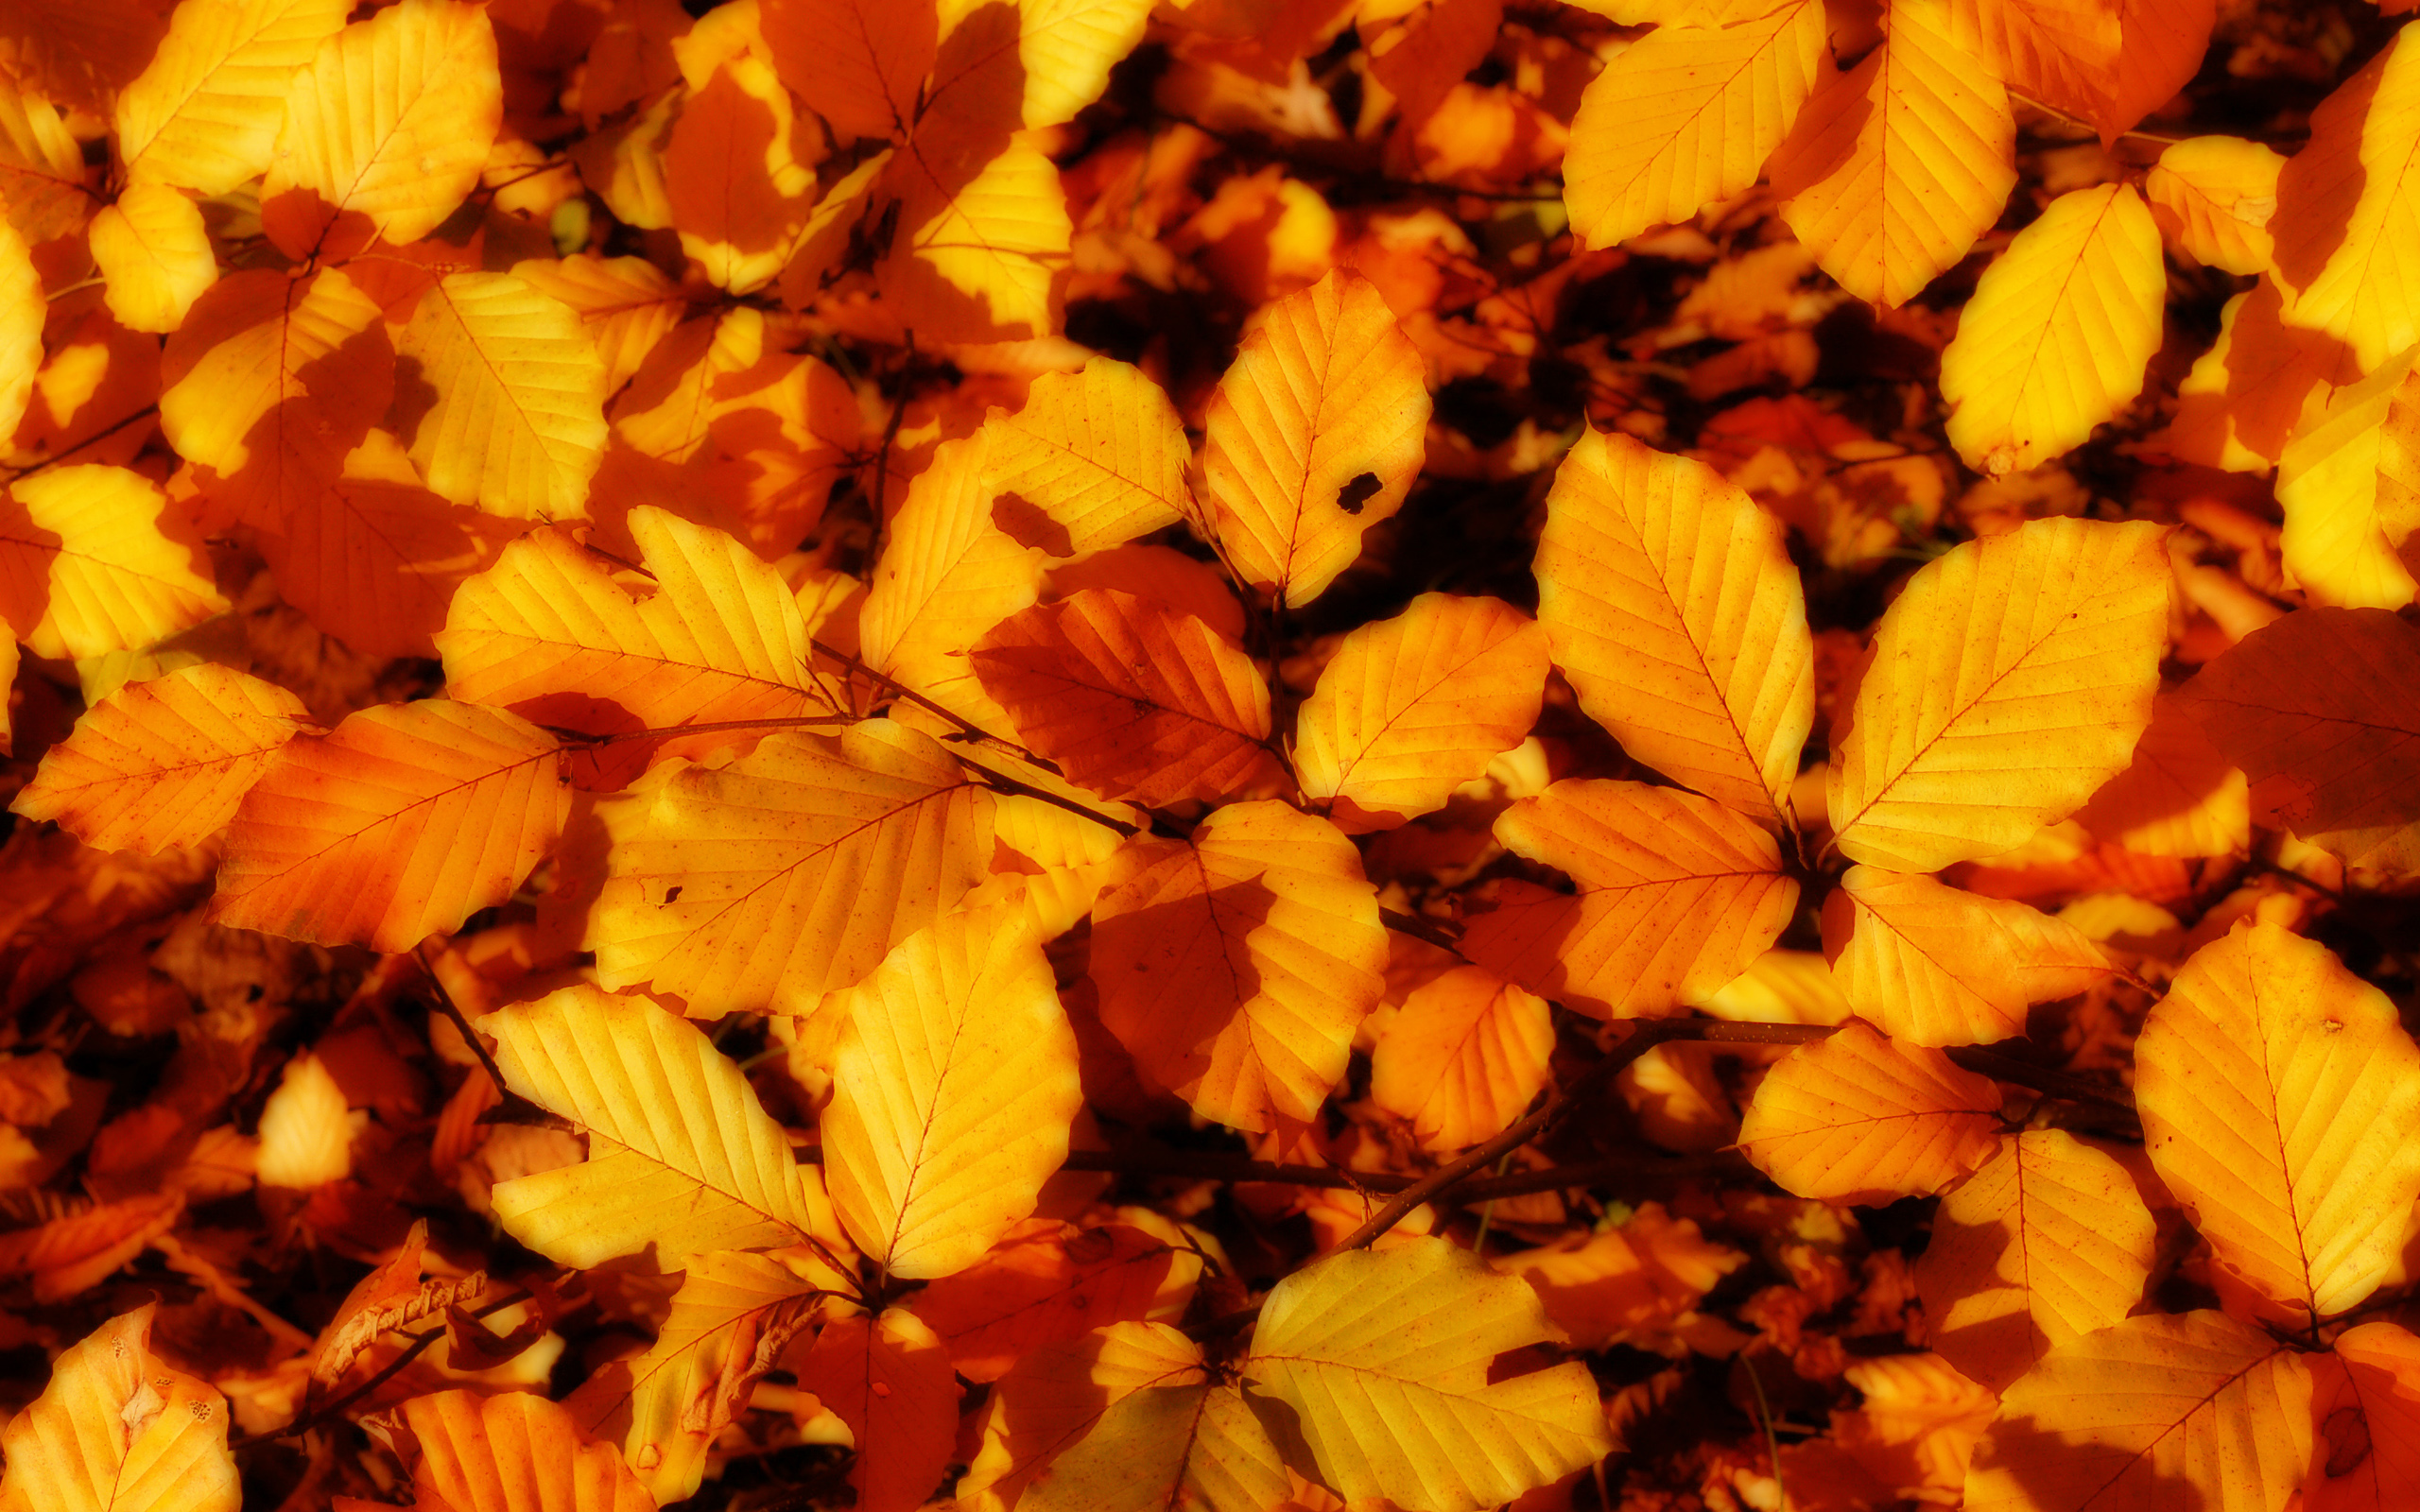 texture leaves, autumn, foliage, download photo, leaves texture